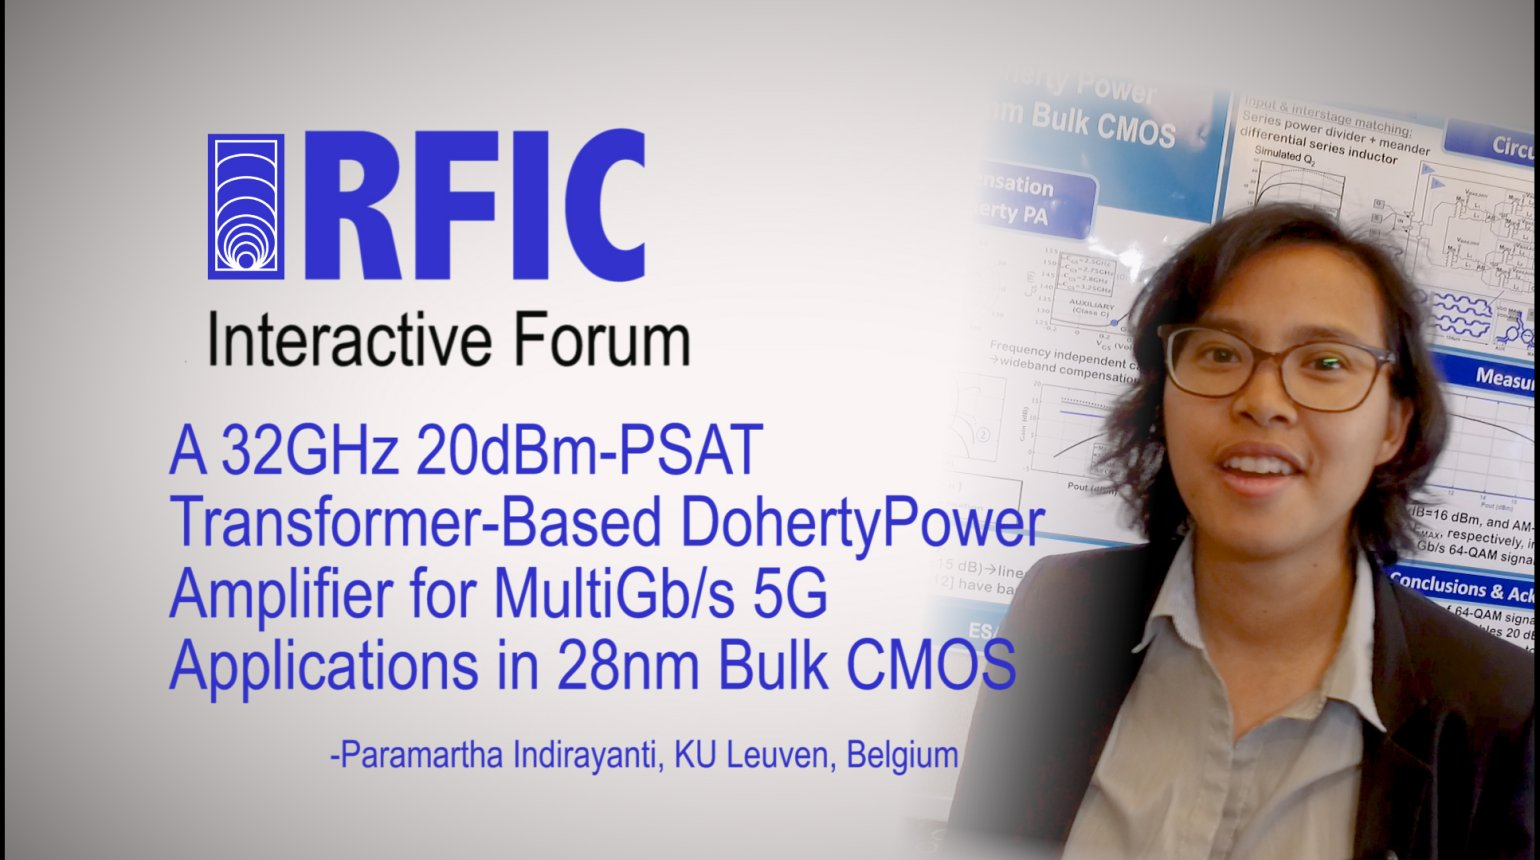 A 32GHz 20dBm-PSAT Transformer-Based Doherty Power Amplifier for MultiGb/s 5G Applications in 28nm Bulk CMOS: RFIC Interactive Forum 2017